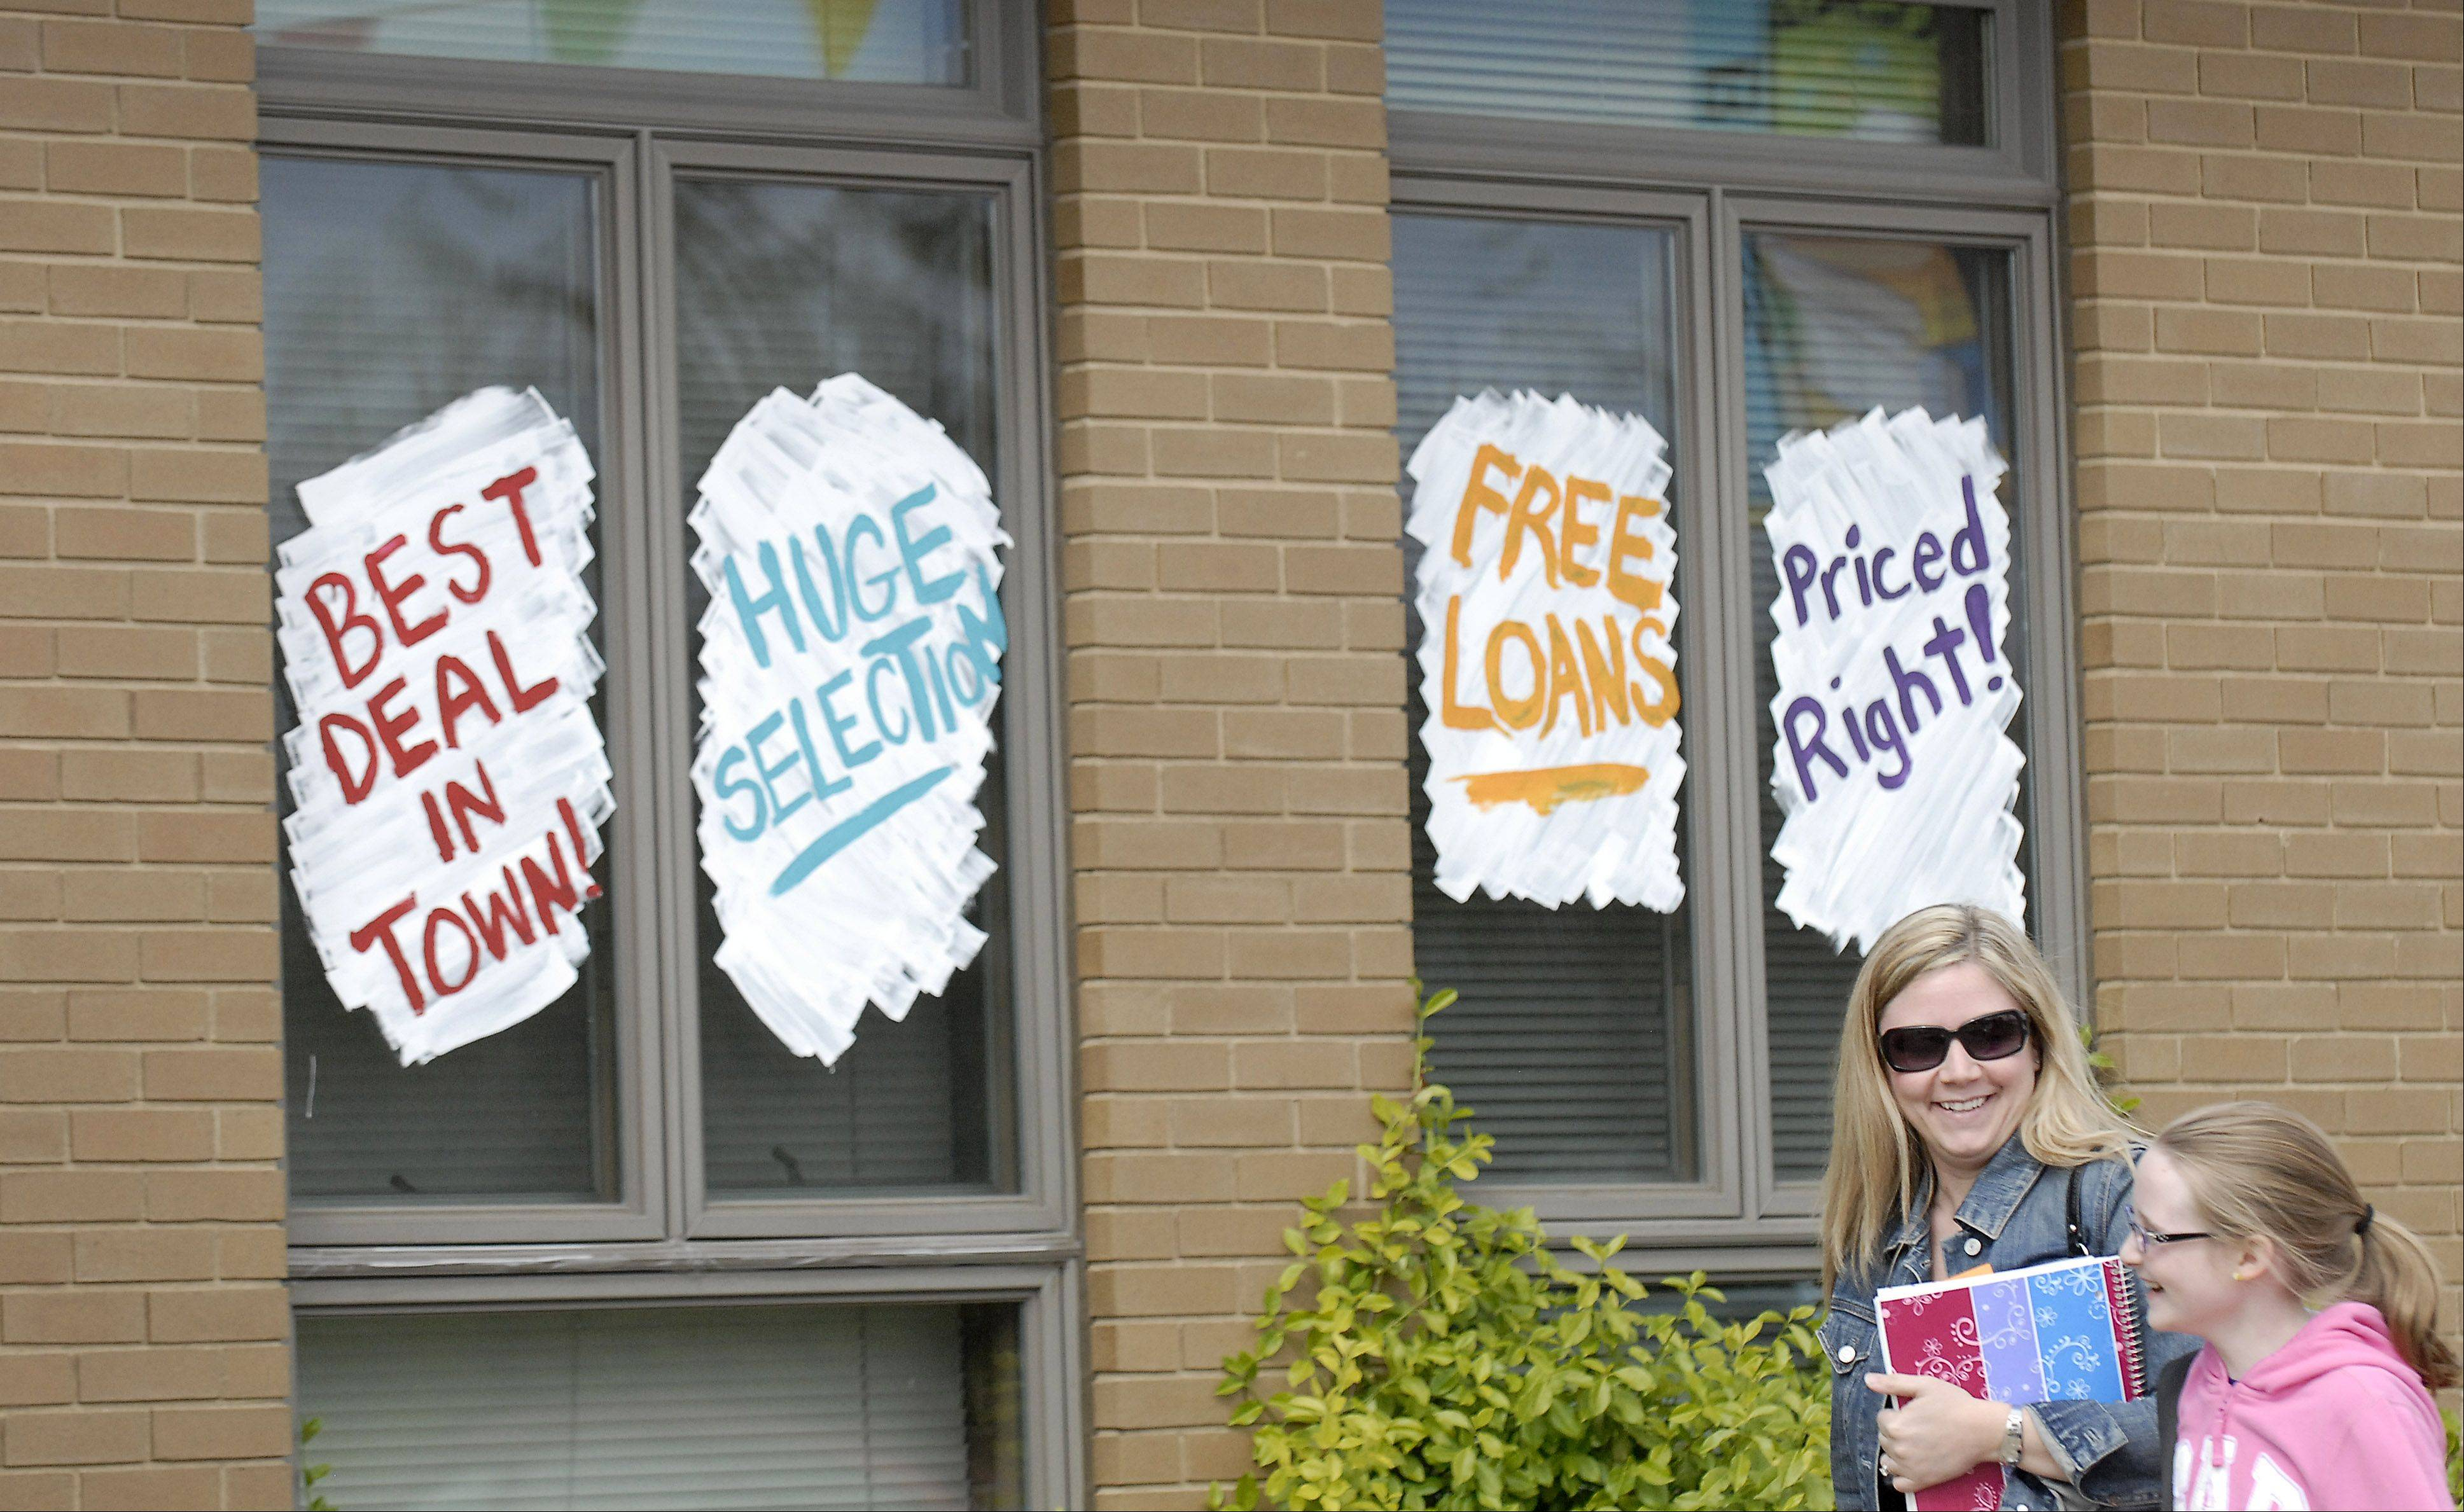 The Bartlett Public Library celebrates National Library Week this week, taking on the appearance of a car dealership to bring in patrons. Signs, window paintings, flags and even an inflatable gorilla on Bartlett Rd is being used to grab people's attention.